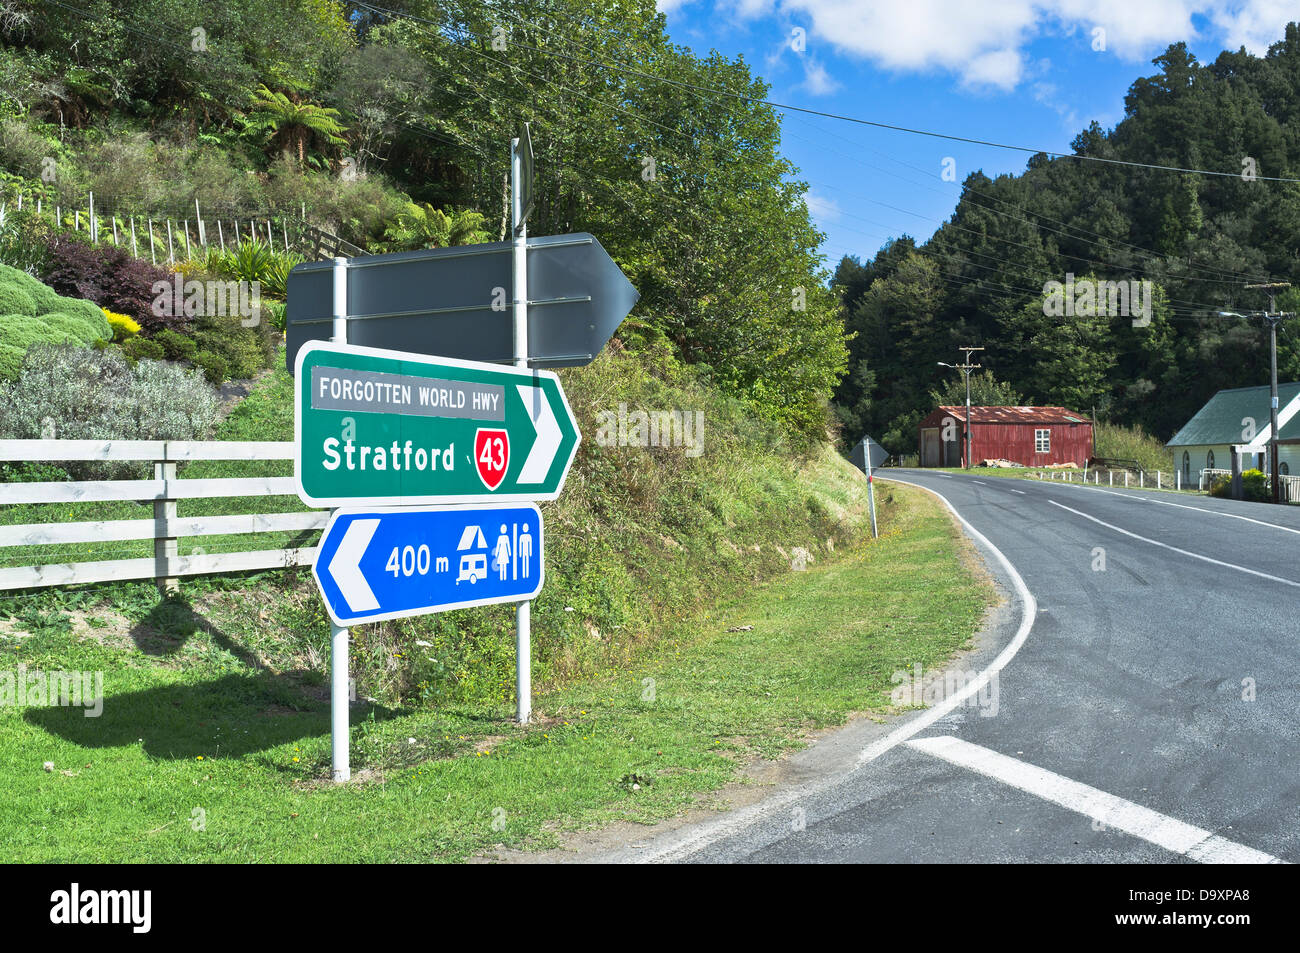 dh Forgotten World Highway WHANGAMOMONA NEW ZEALAND SH43 state highway road signpost sign nz north island - Stock Image